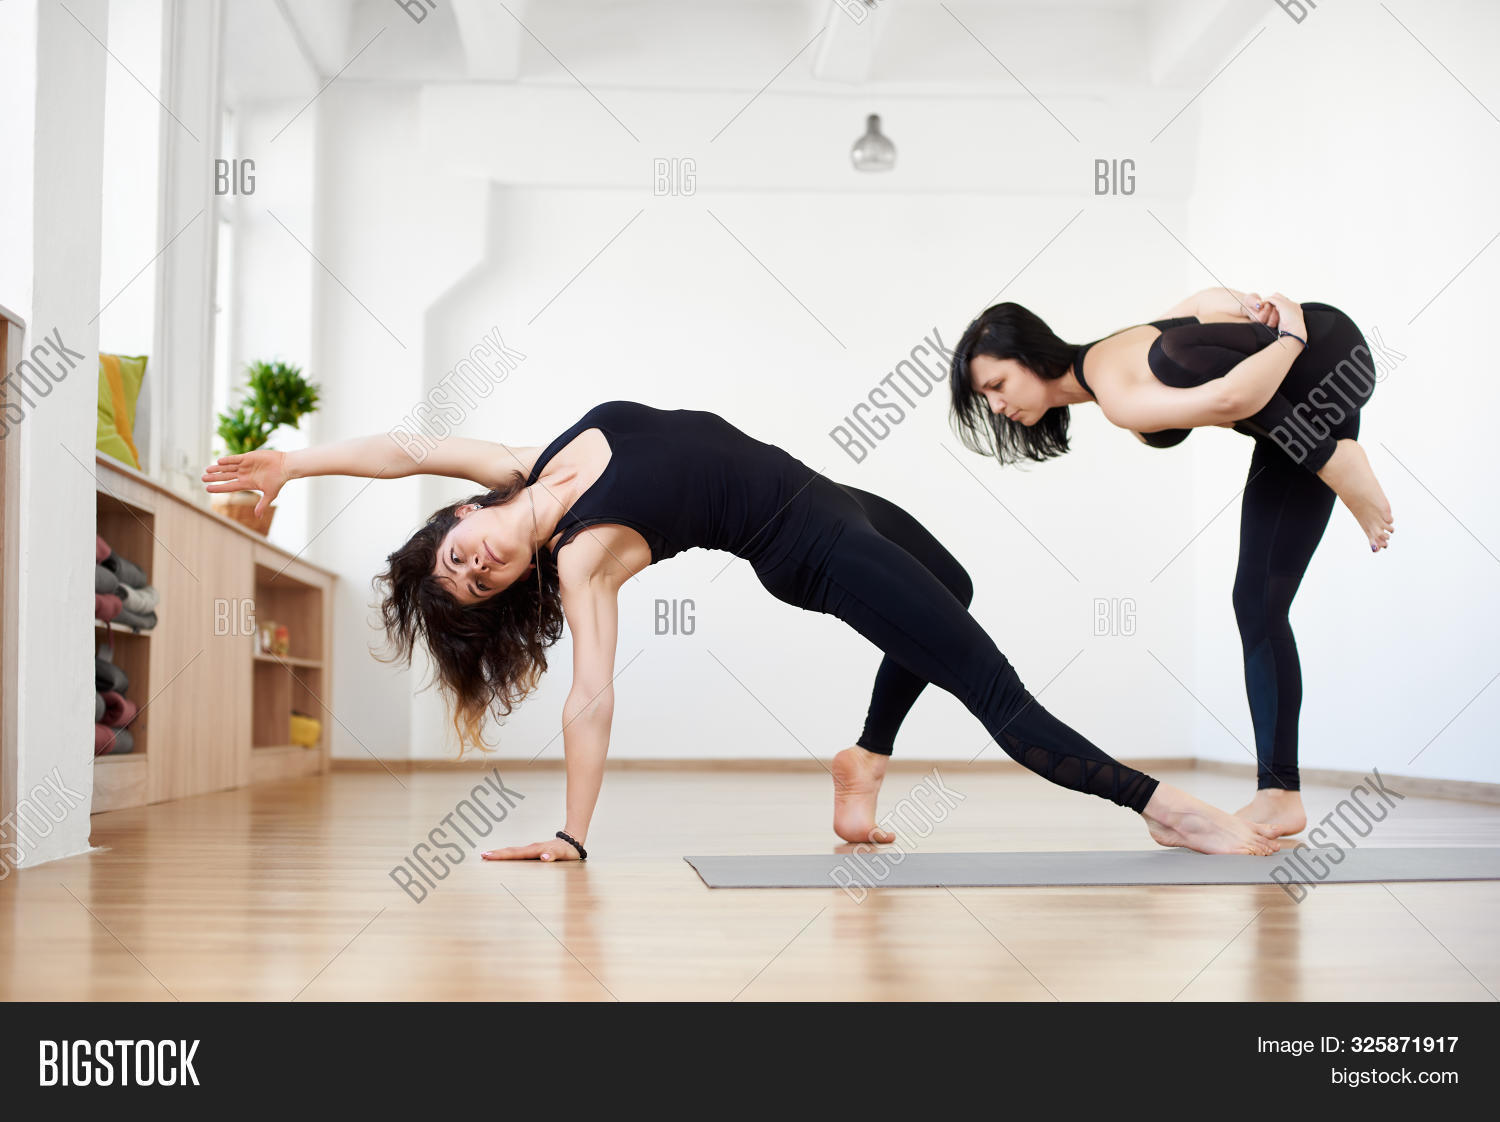 Two Young Women Image Photo Free Trial Bigstock